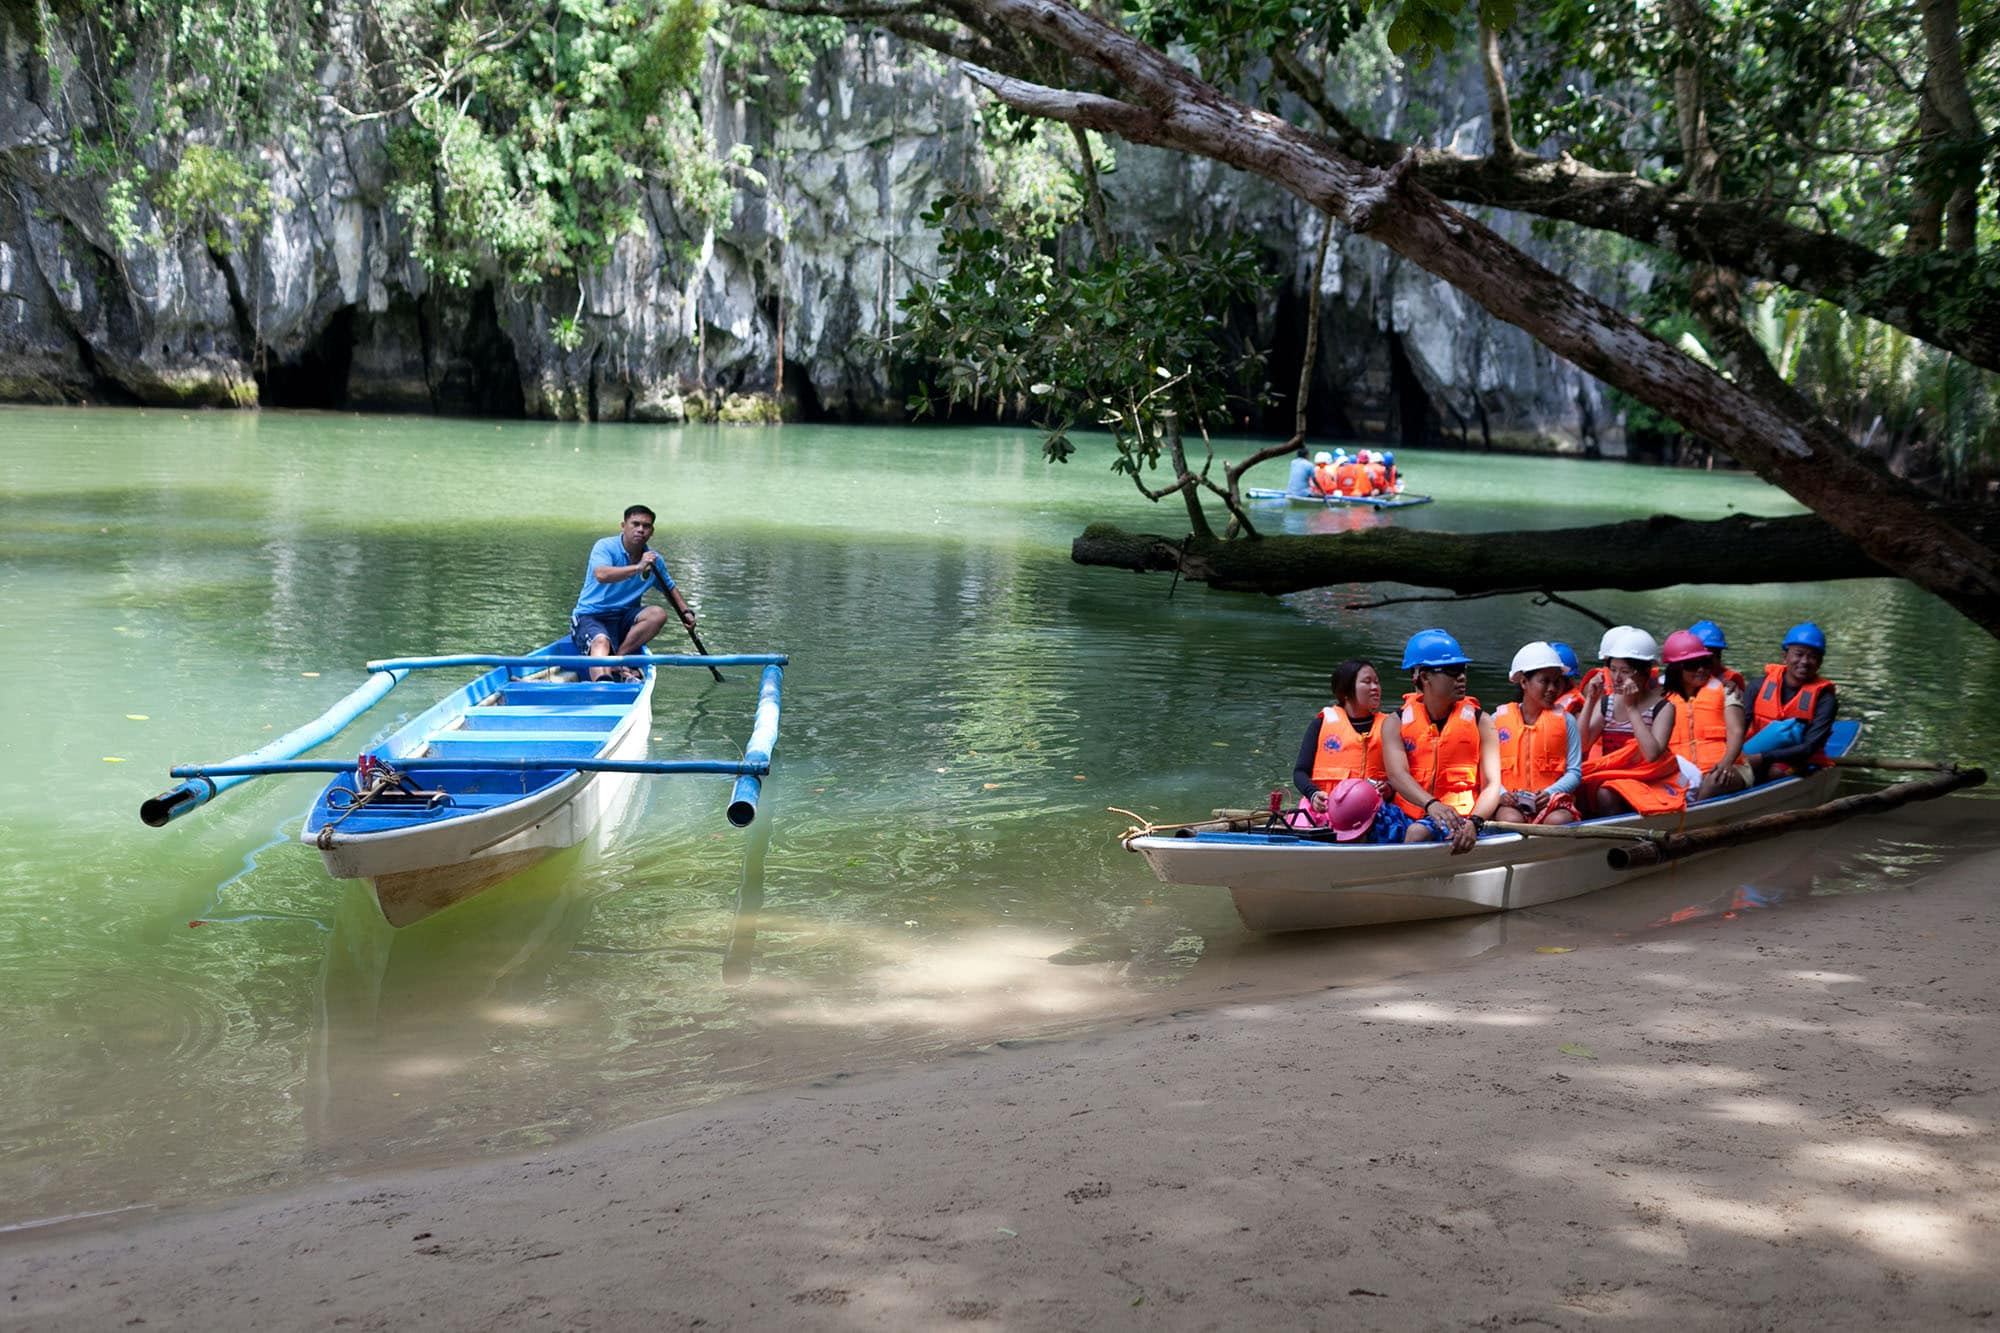 Puerto Princesa Underground River in the Philippines.